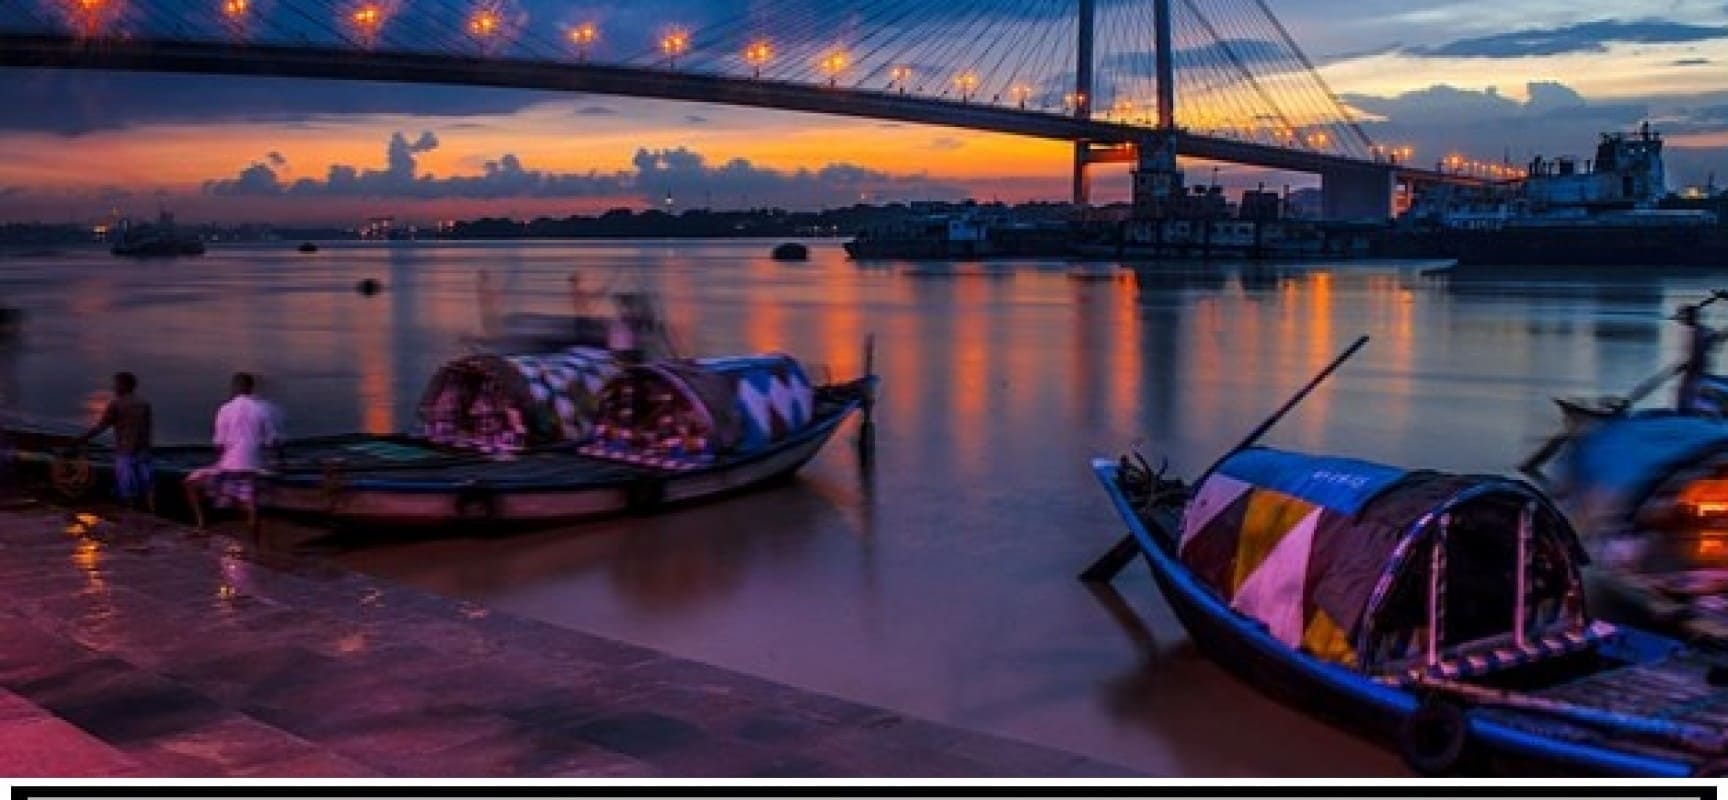 Kolkata – Amar Sohor (My City)